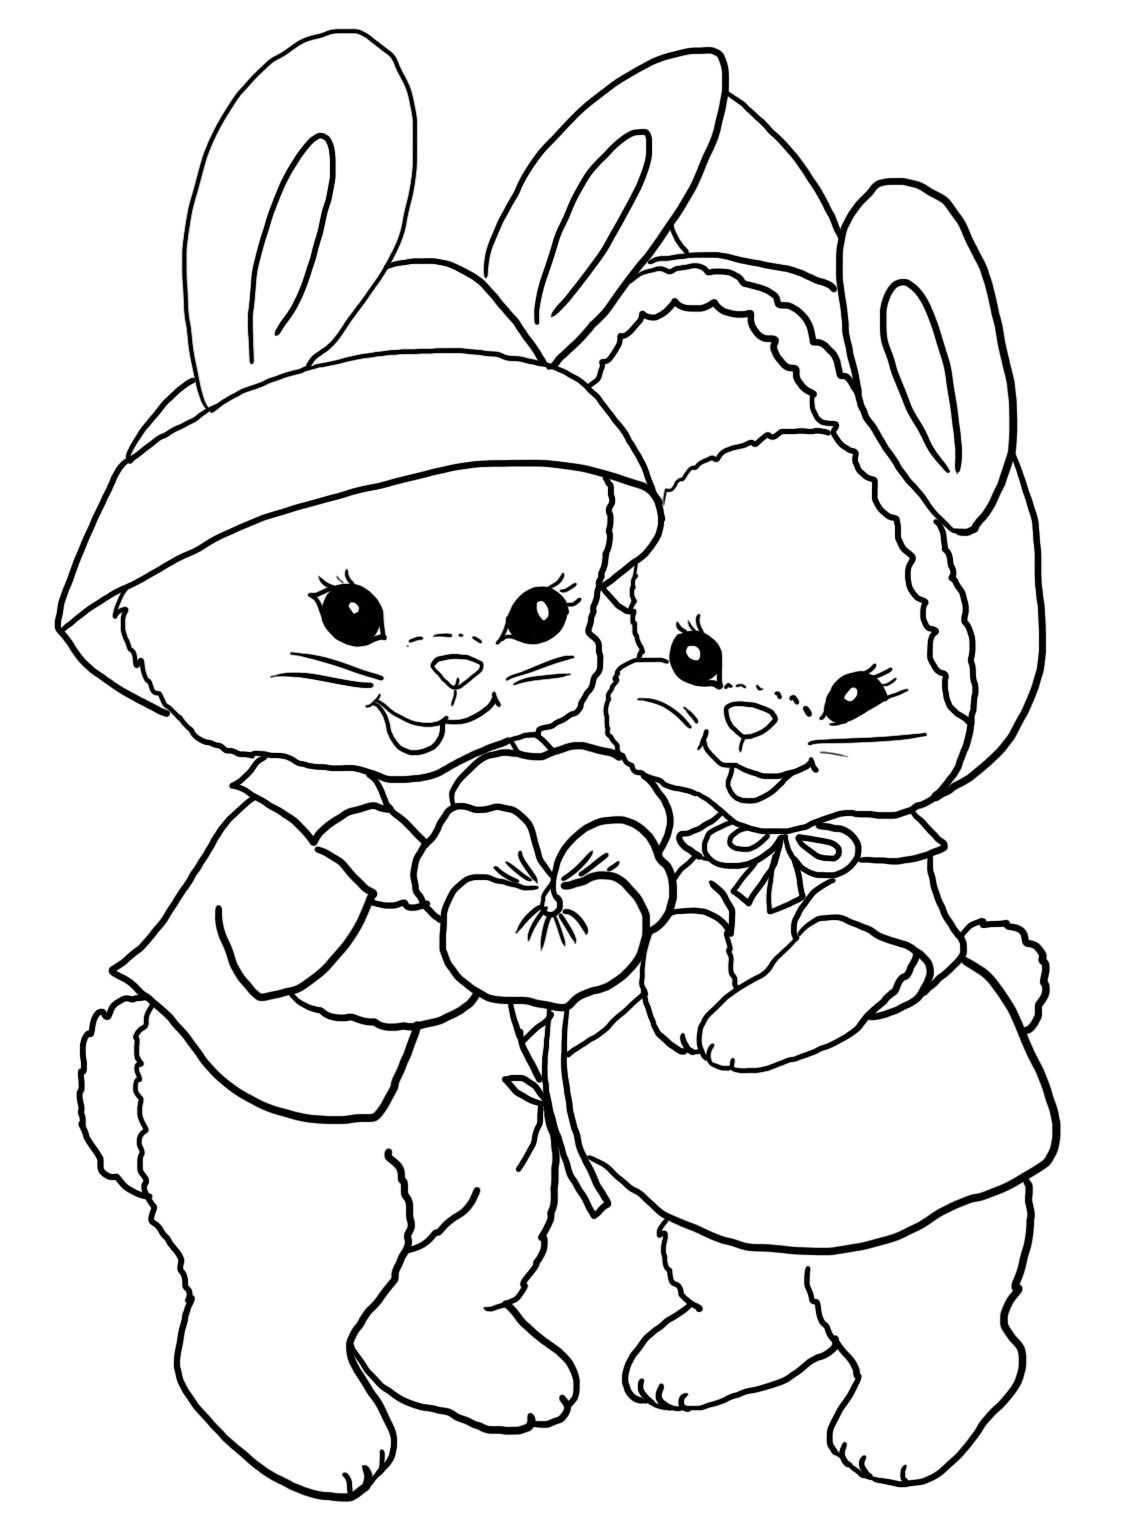 Free Easter Bunny Face Coloring Pages, Download Free Clip Art ... | 1535x1122